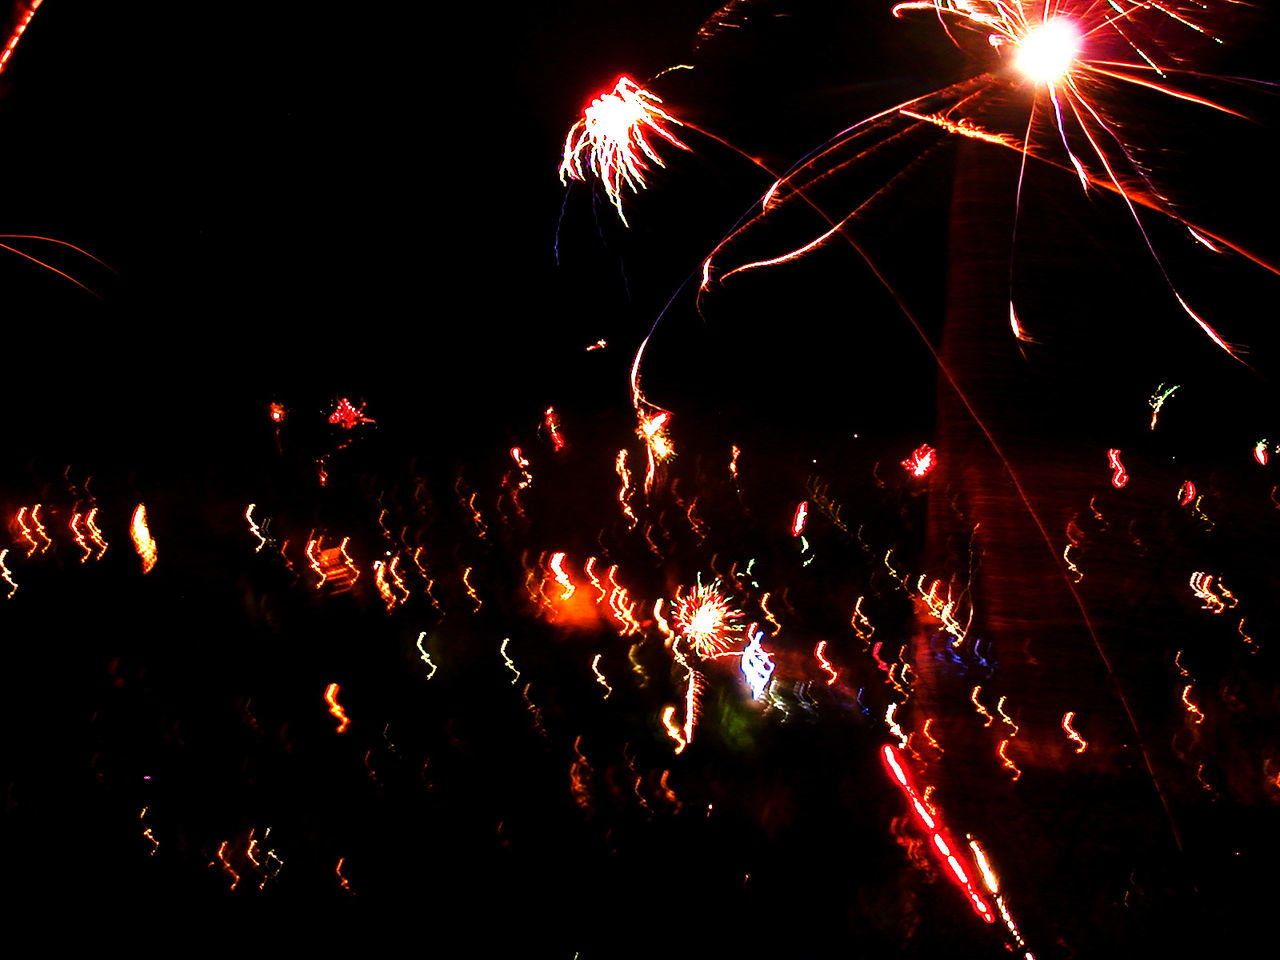 2008 Celebration Event Exploding Firework - Man Made Object Firework Display Fireworks Freiburg Germany January New Year Night No People Sparks